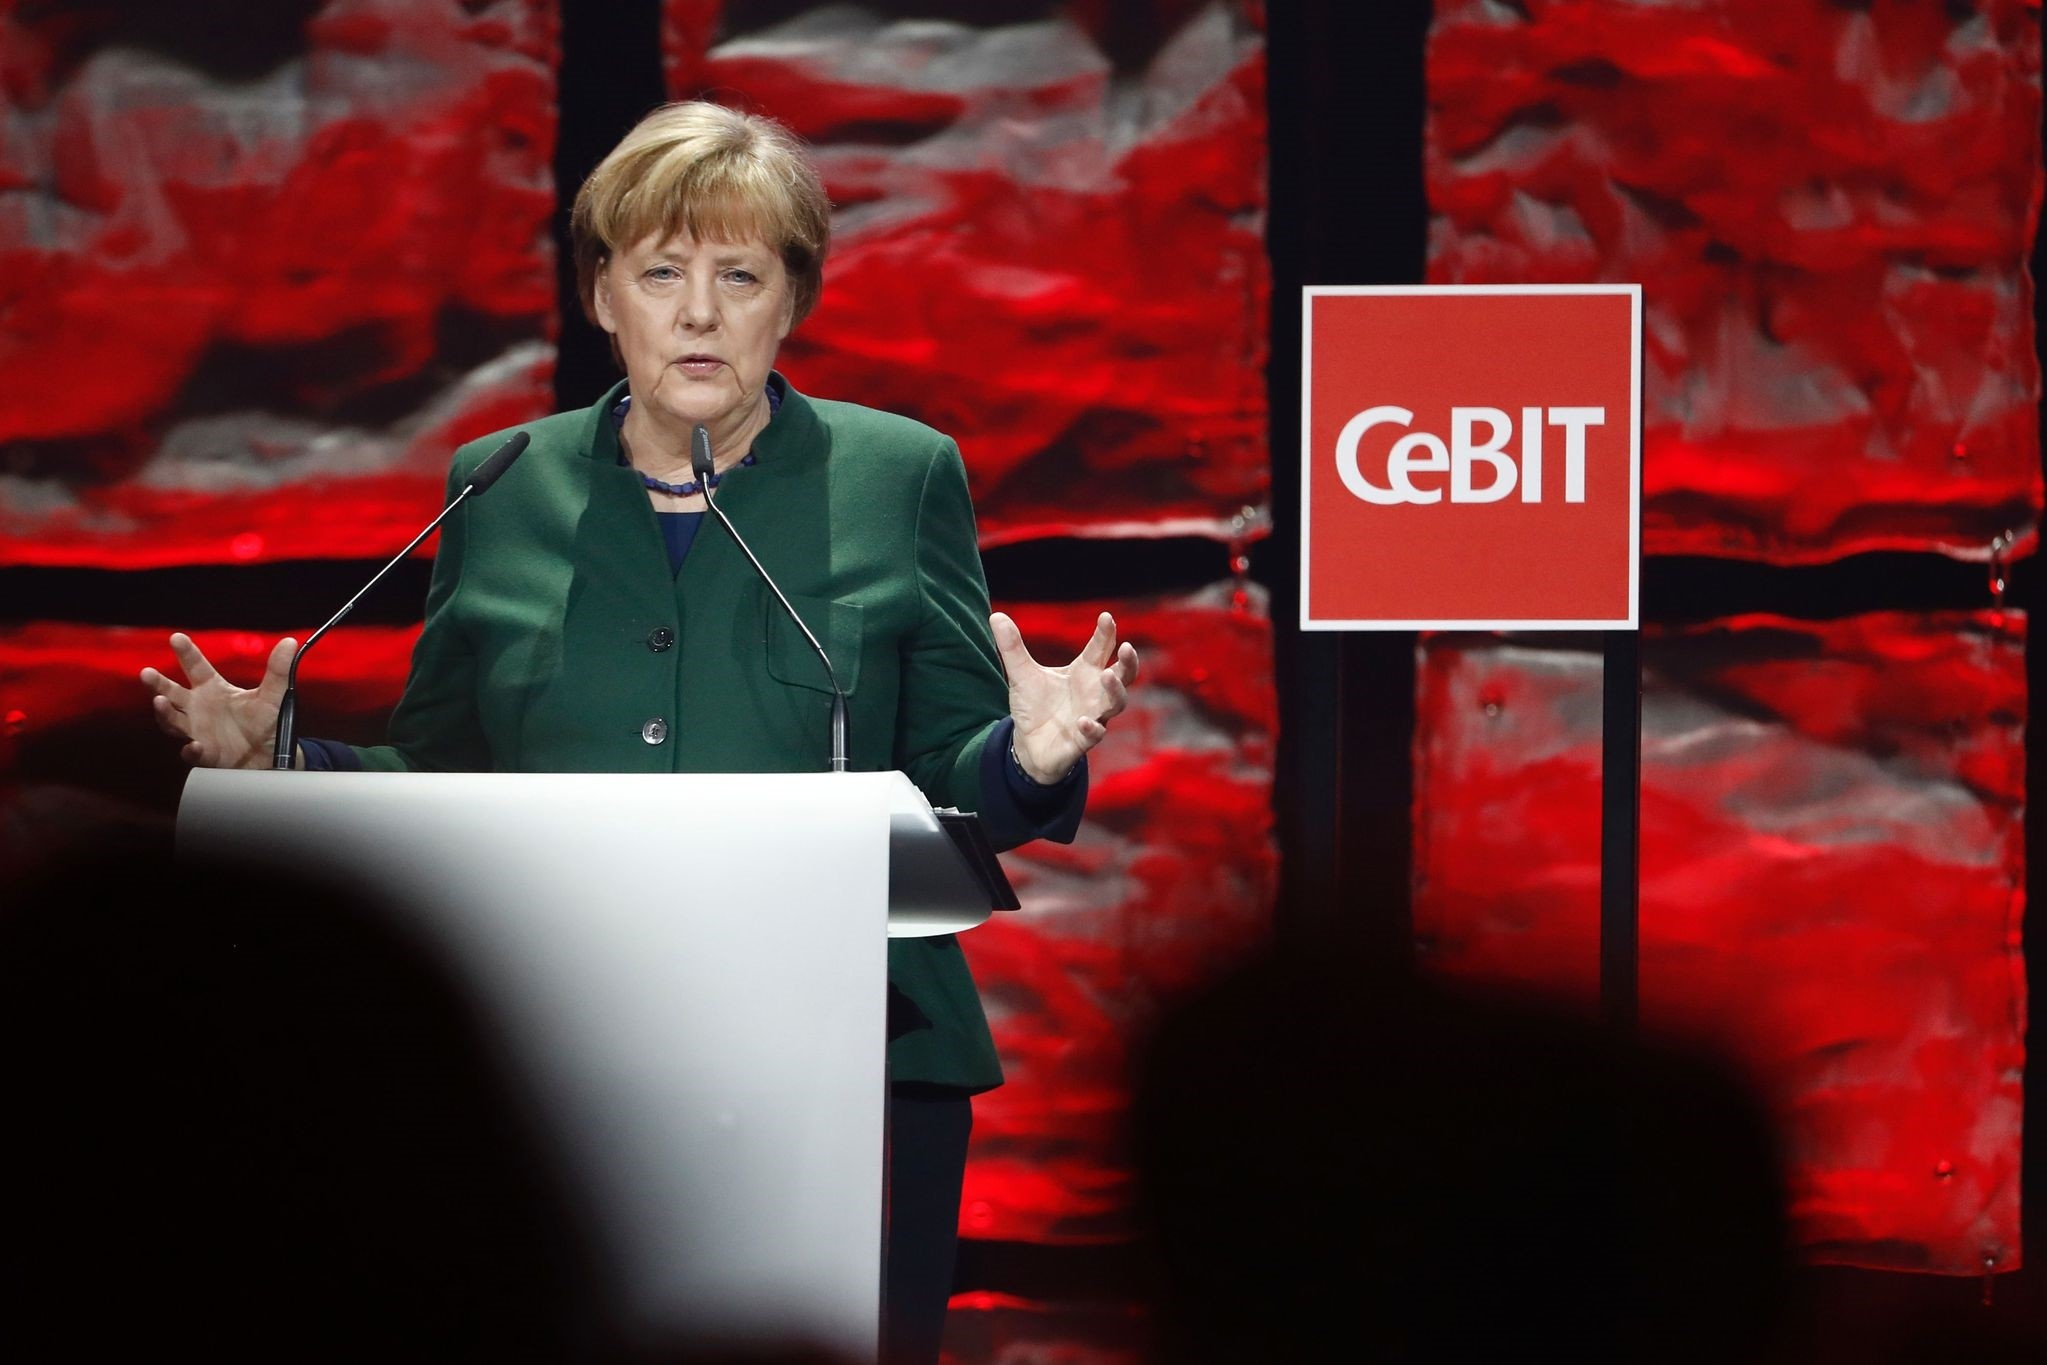 Merkel delivers her speech at the official opening of the CeBIT technology fair in Hanover, central Germany, on March 19, 2017. (AFP Photo)